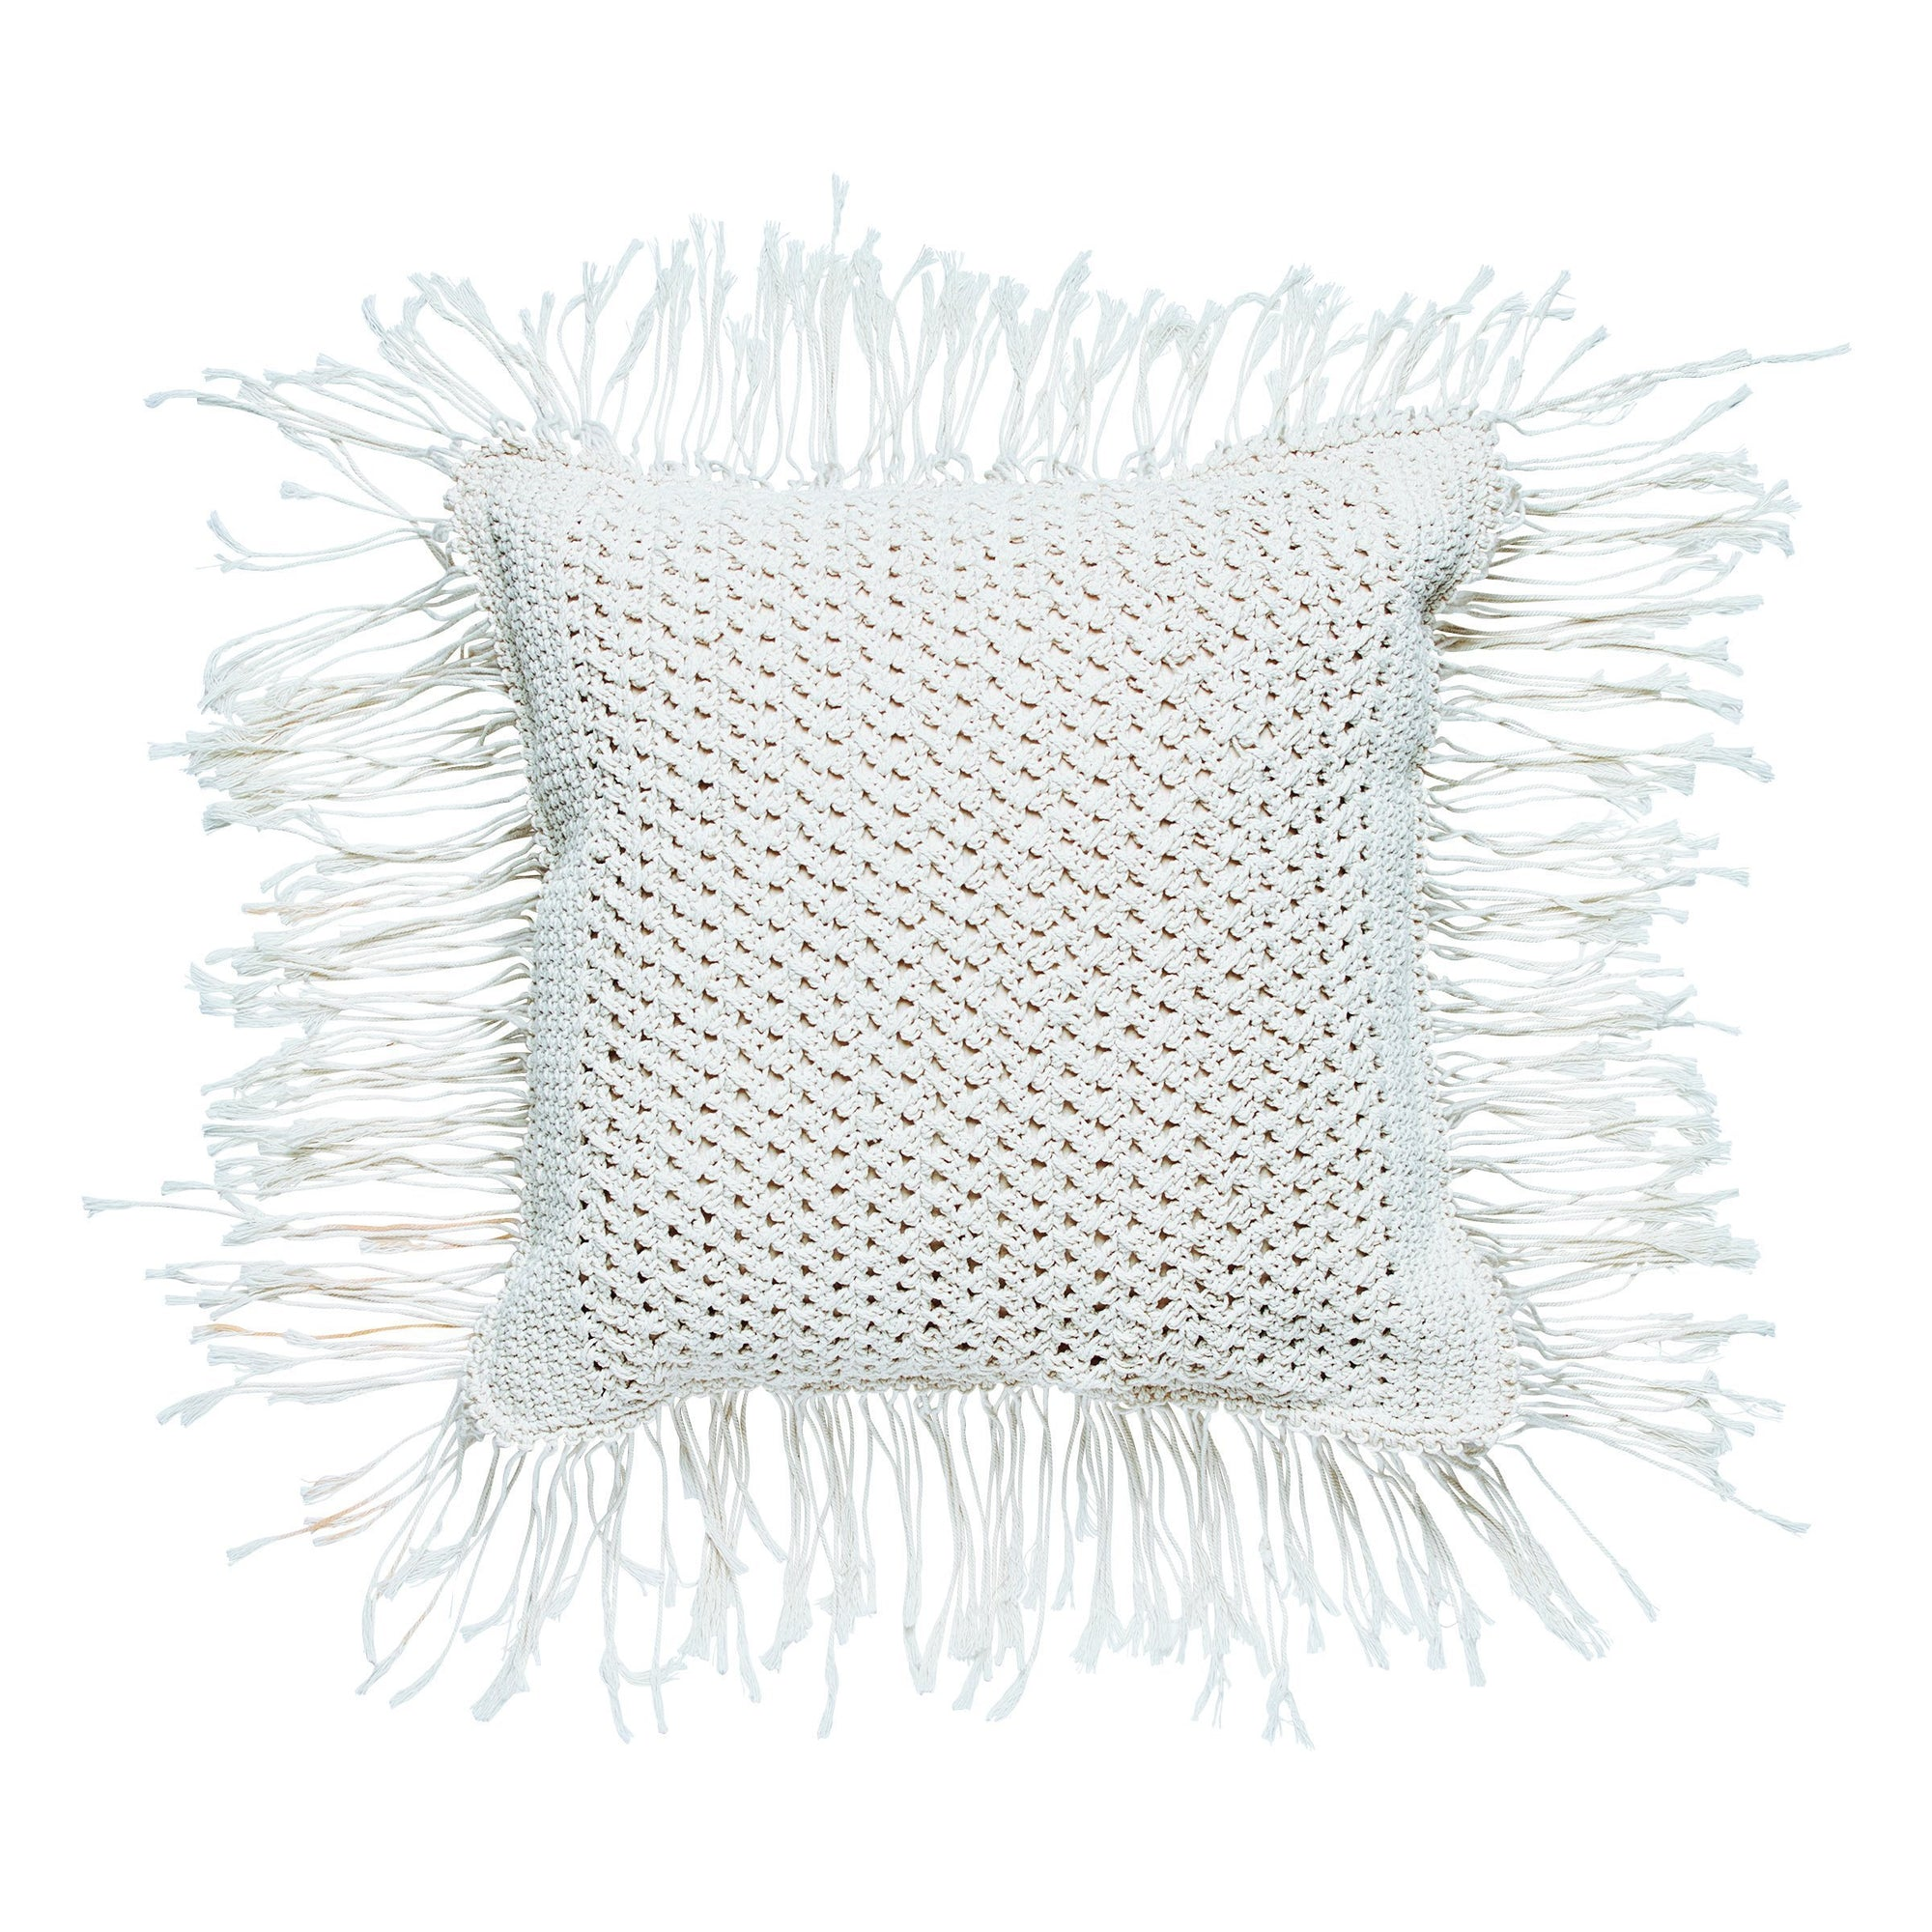 Crochet pillowcase with fringe (BSH1084)